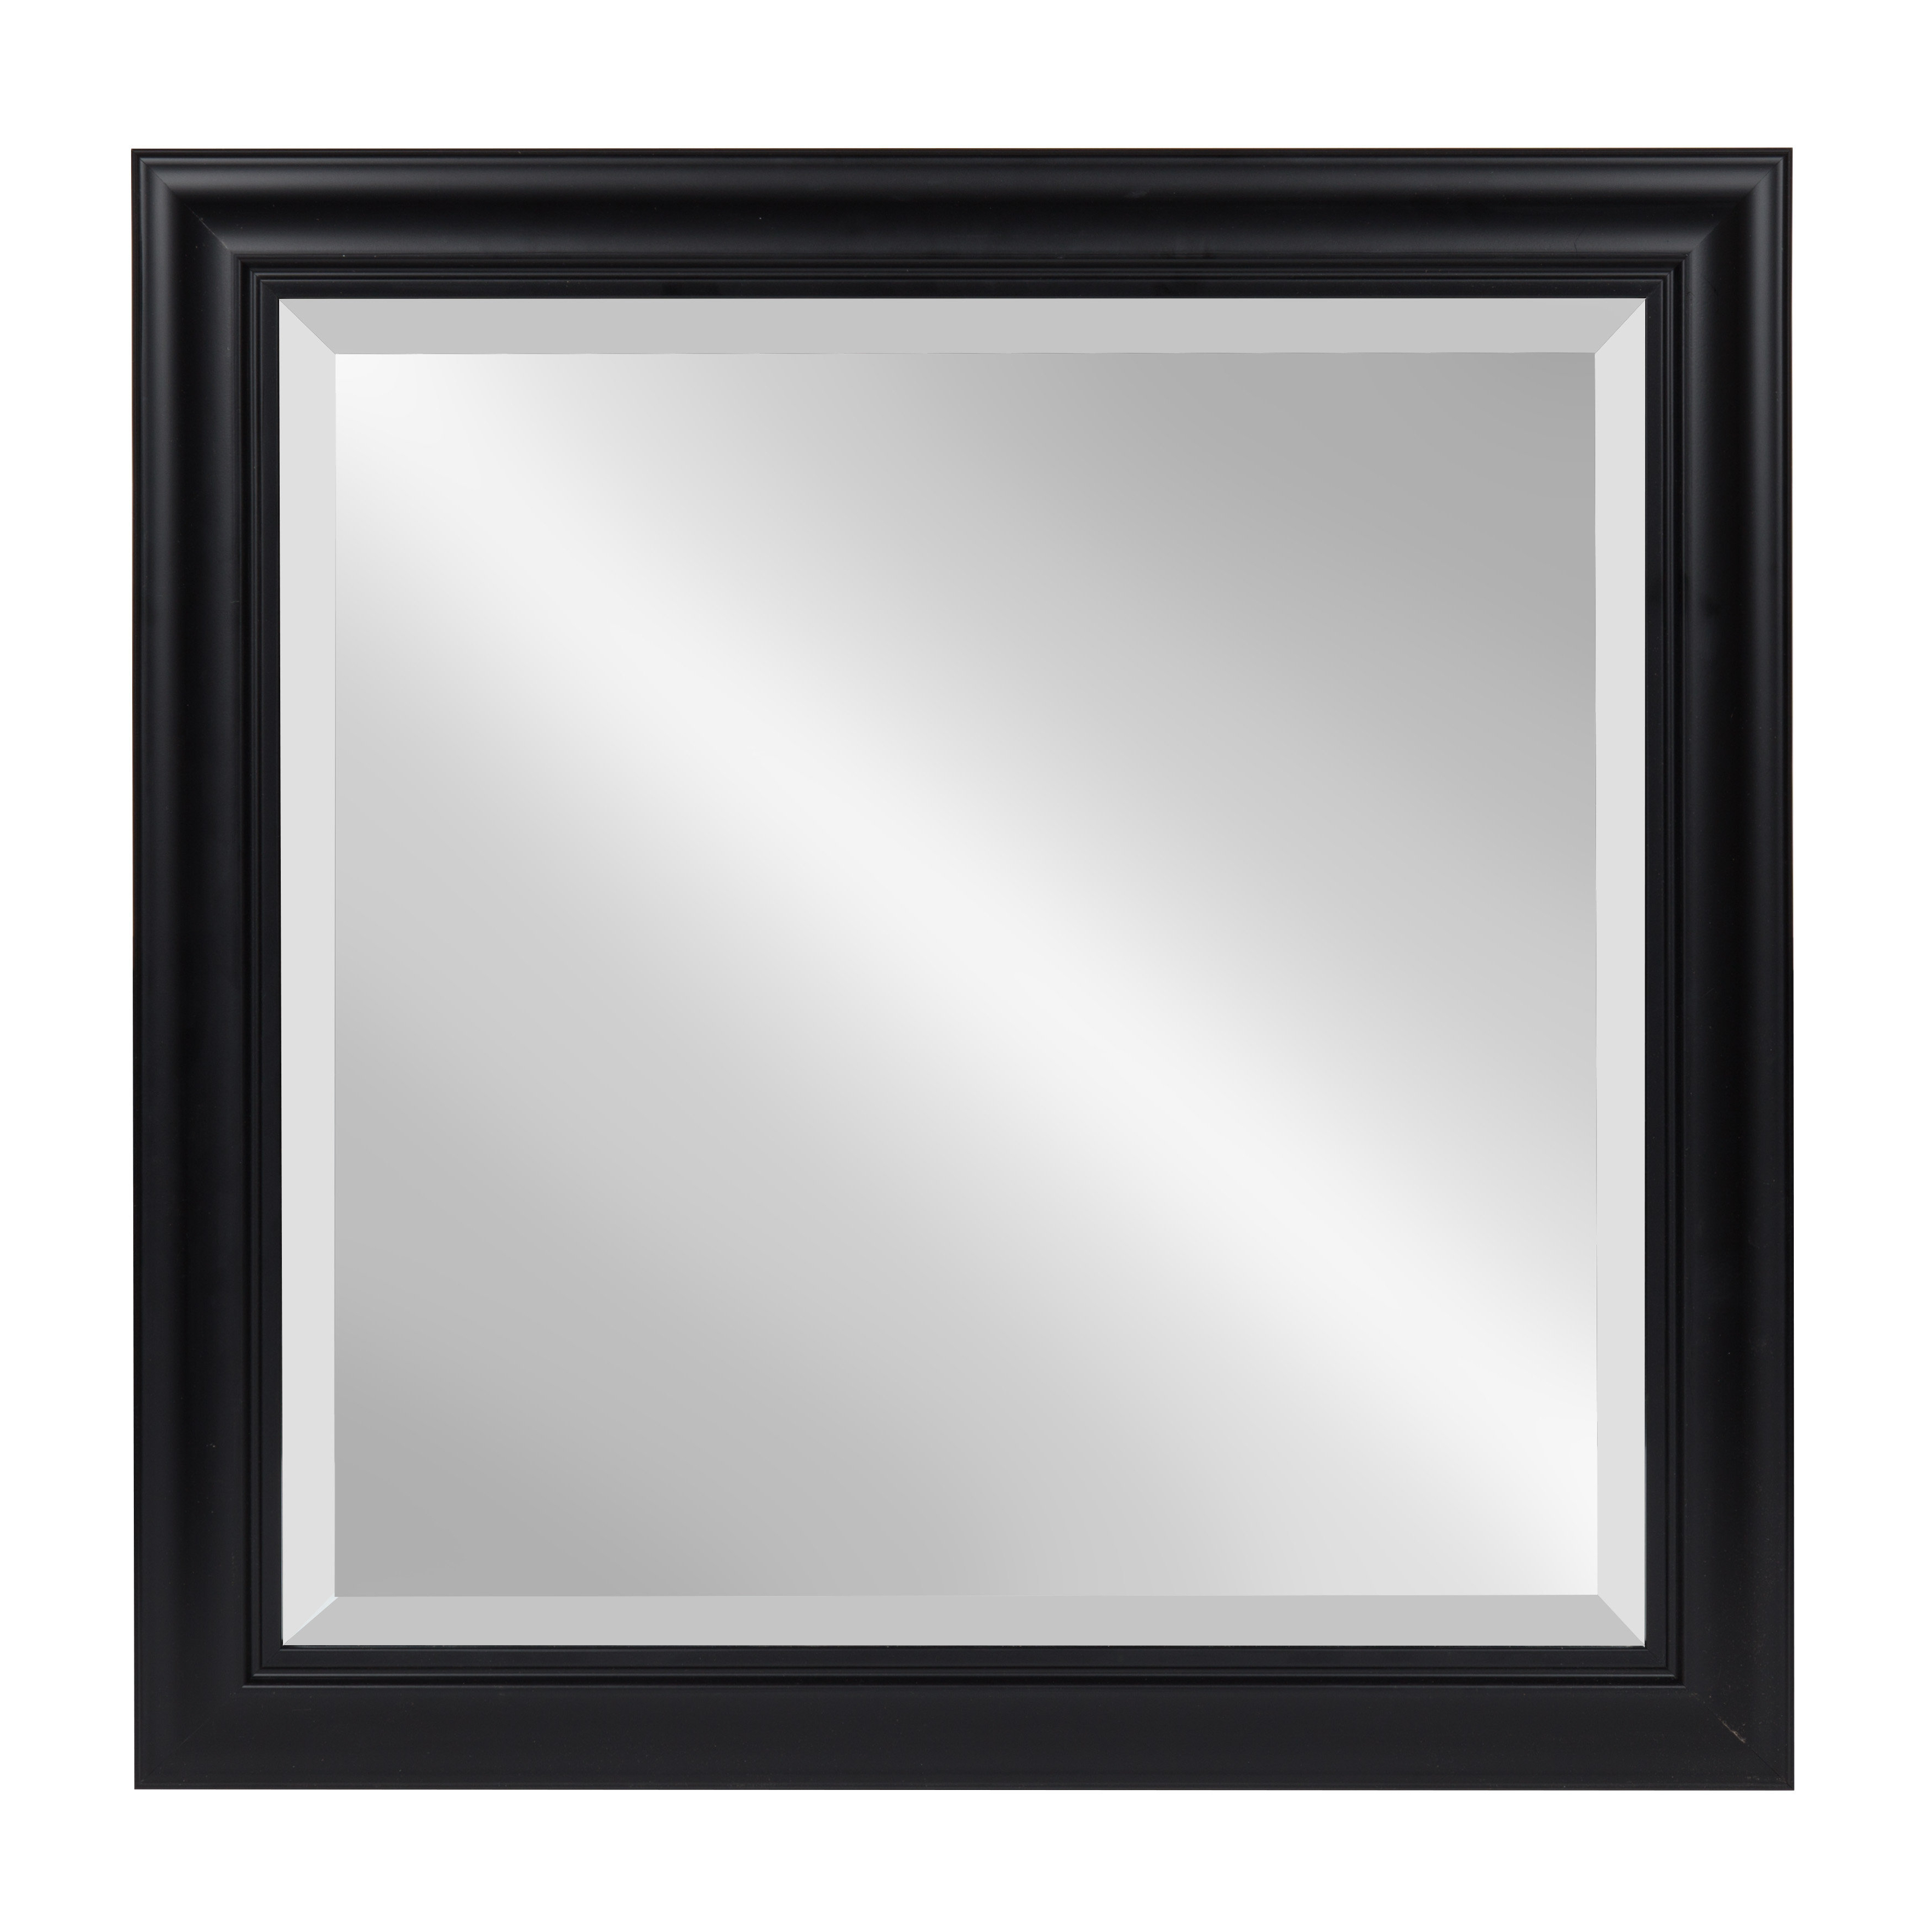 Recent Hegarty Square Framed Accent Mirror For Northcutt Accent Mirrors (View 12 of 20)